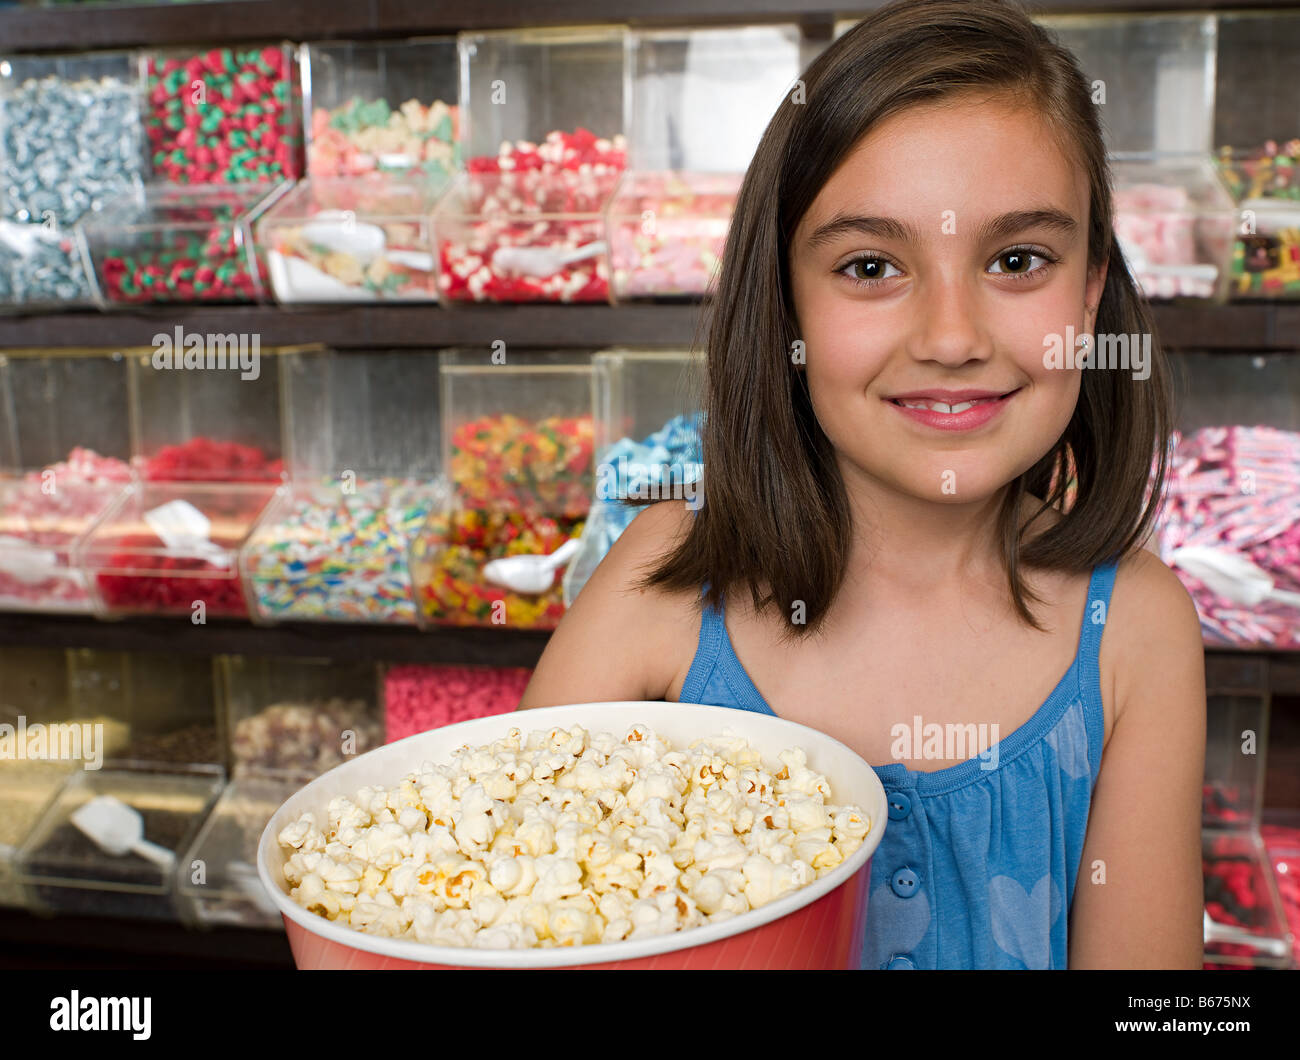 Girl holding a tub of popcorn - Stock Image